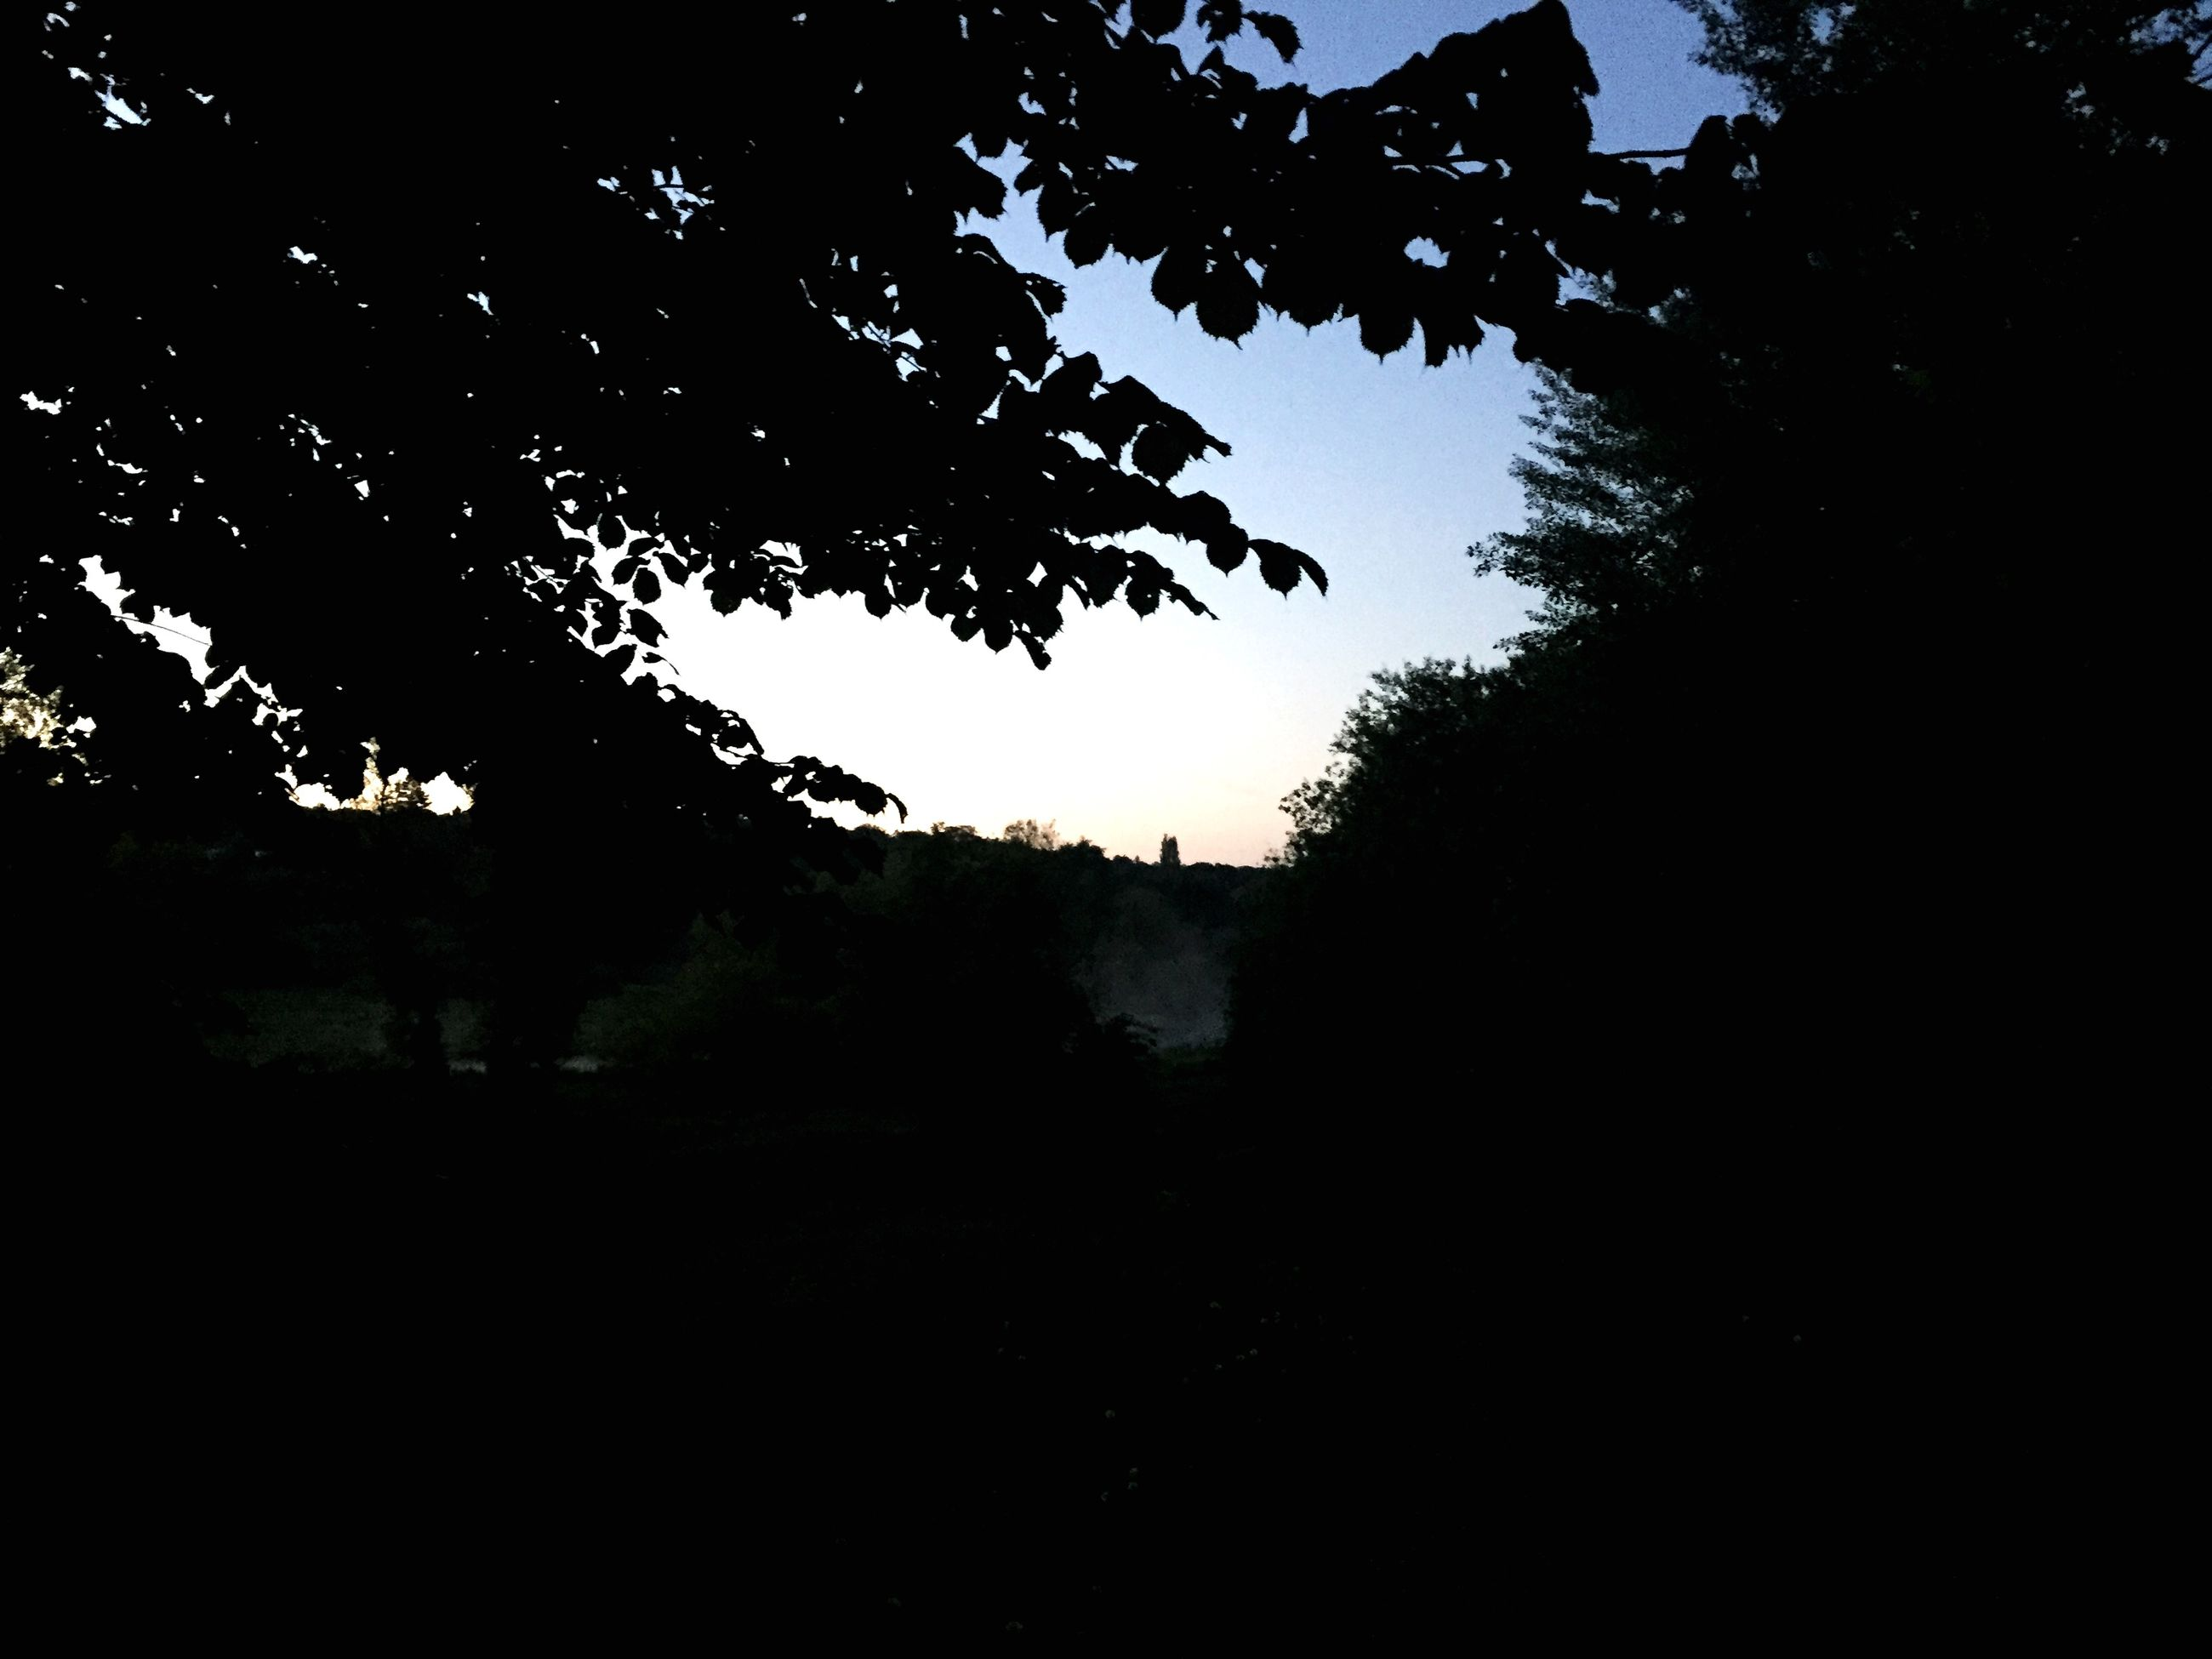 tree, silhouette, tranquility, clear sky, branch, tranquil scene, nature, growth, beauty in nature, scenics, dark, copy space, sky, sunset, dusk, outline, idyllic, no people, outdoors, low angle view